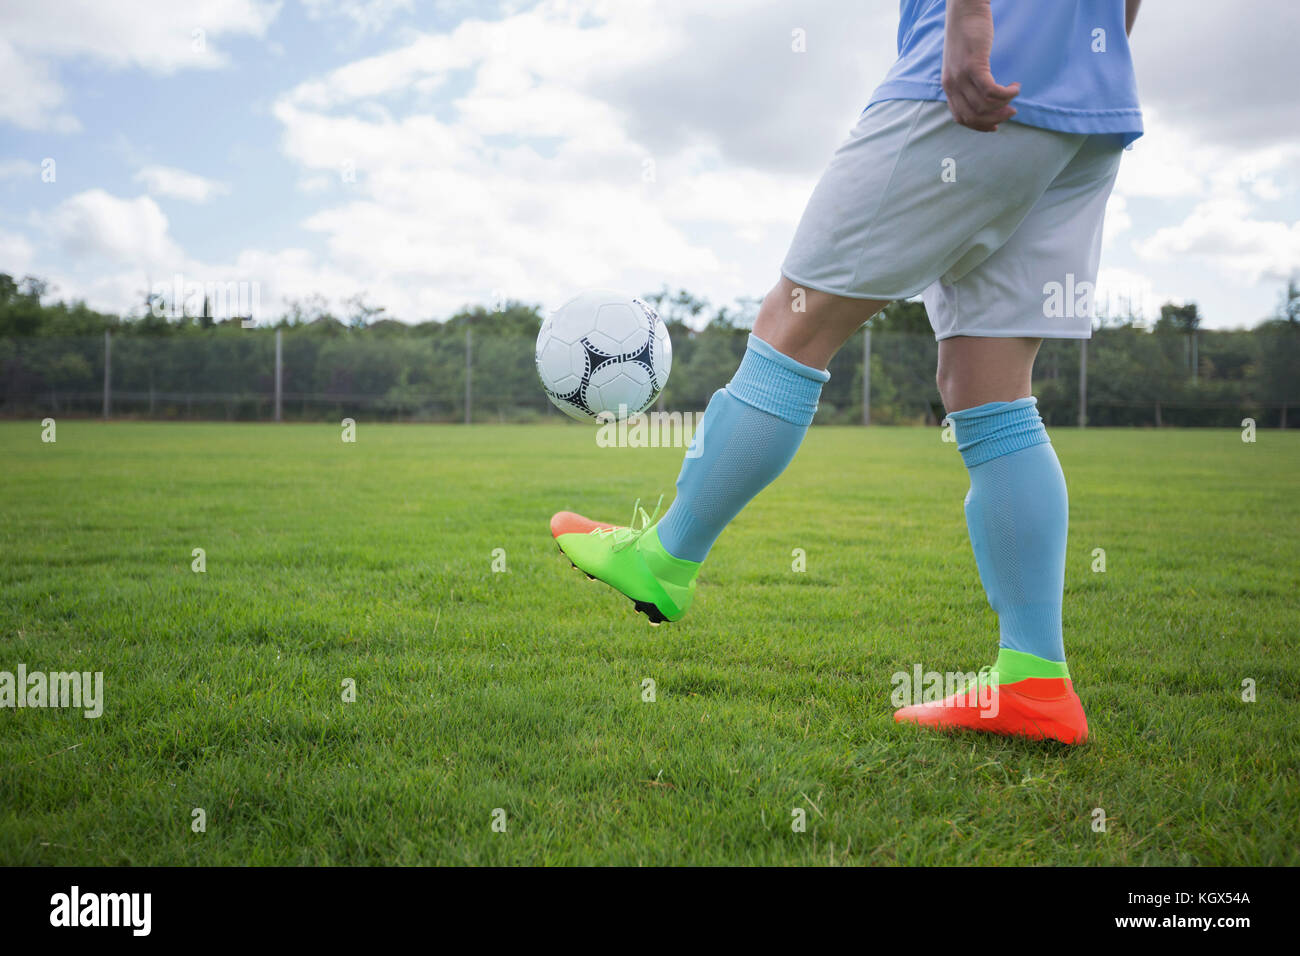 Football player juggling soccer ball in the ground - Stock Image